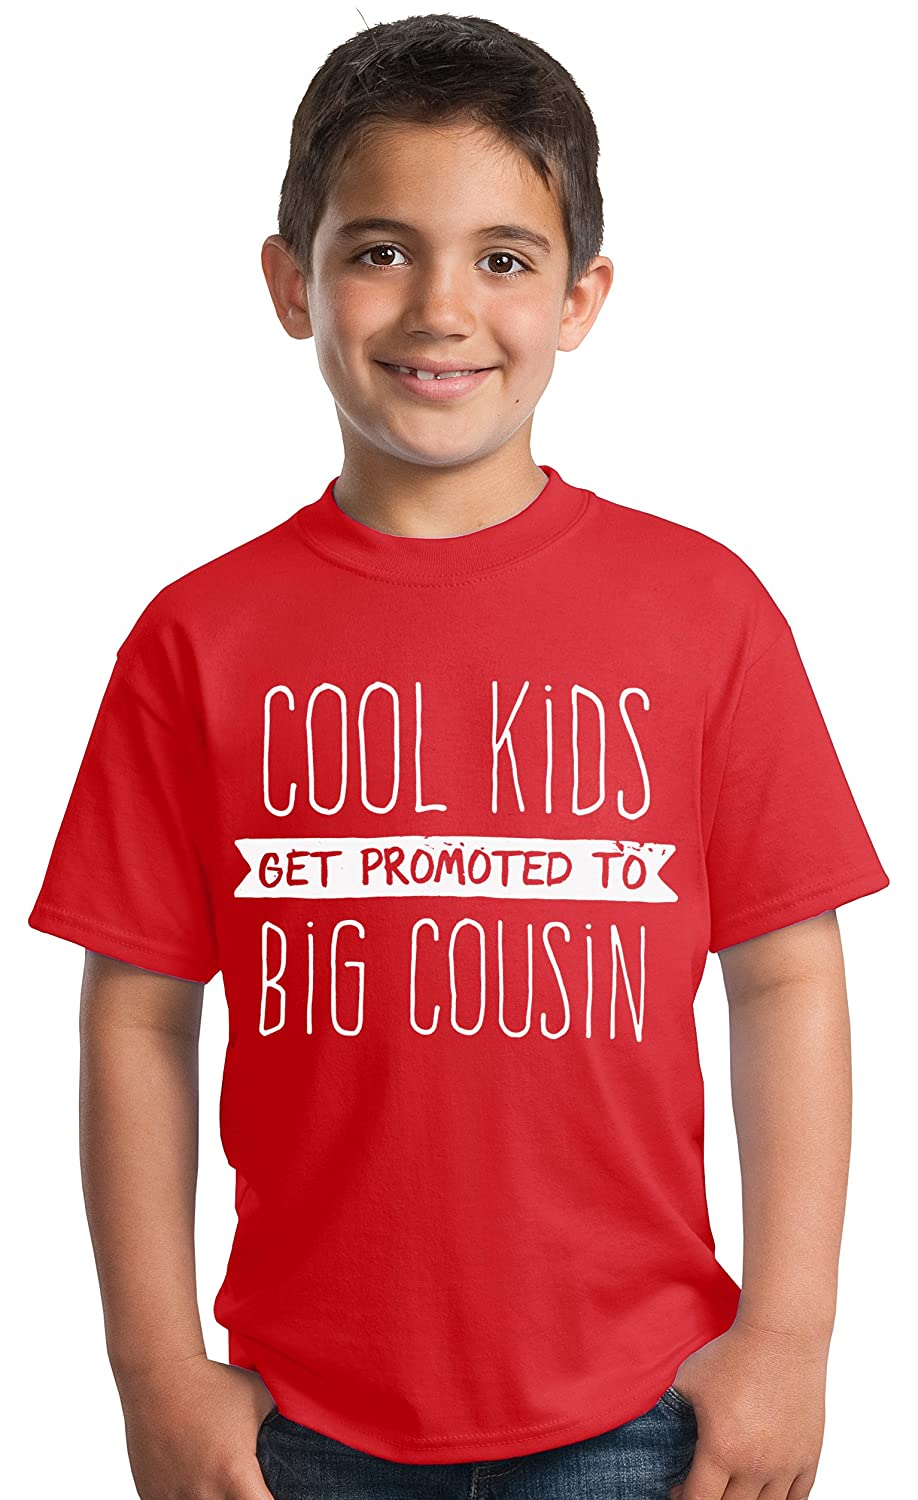 Cool Kids Get Promoted to Big Cousin New Baby Funny Family Humor Youth T-Shirt